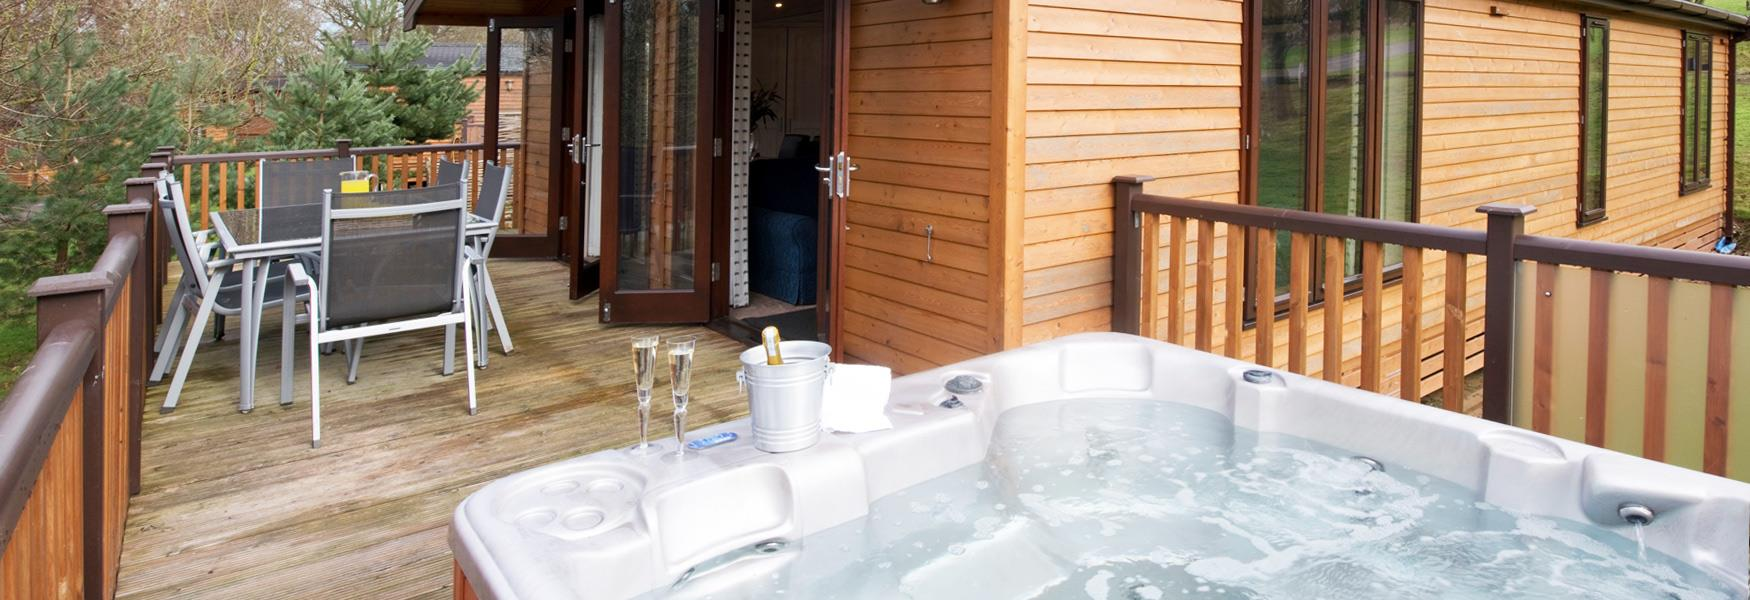 Accommodation with Hot Tubs - Visit Peak District